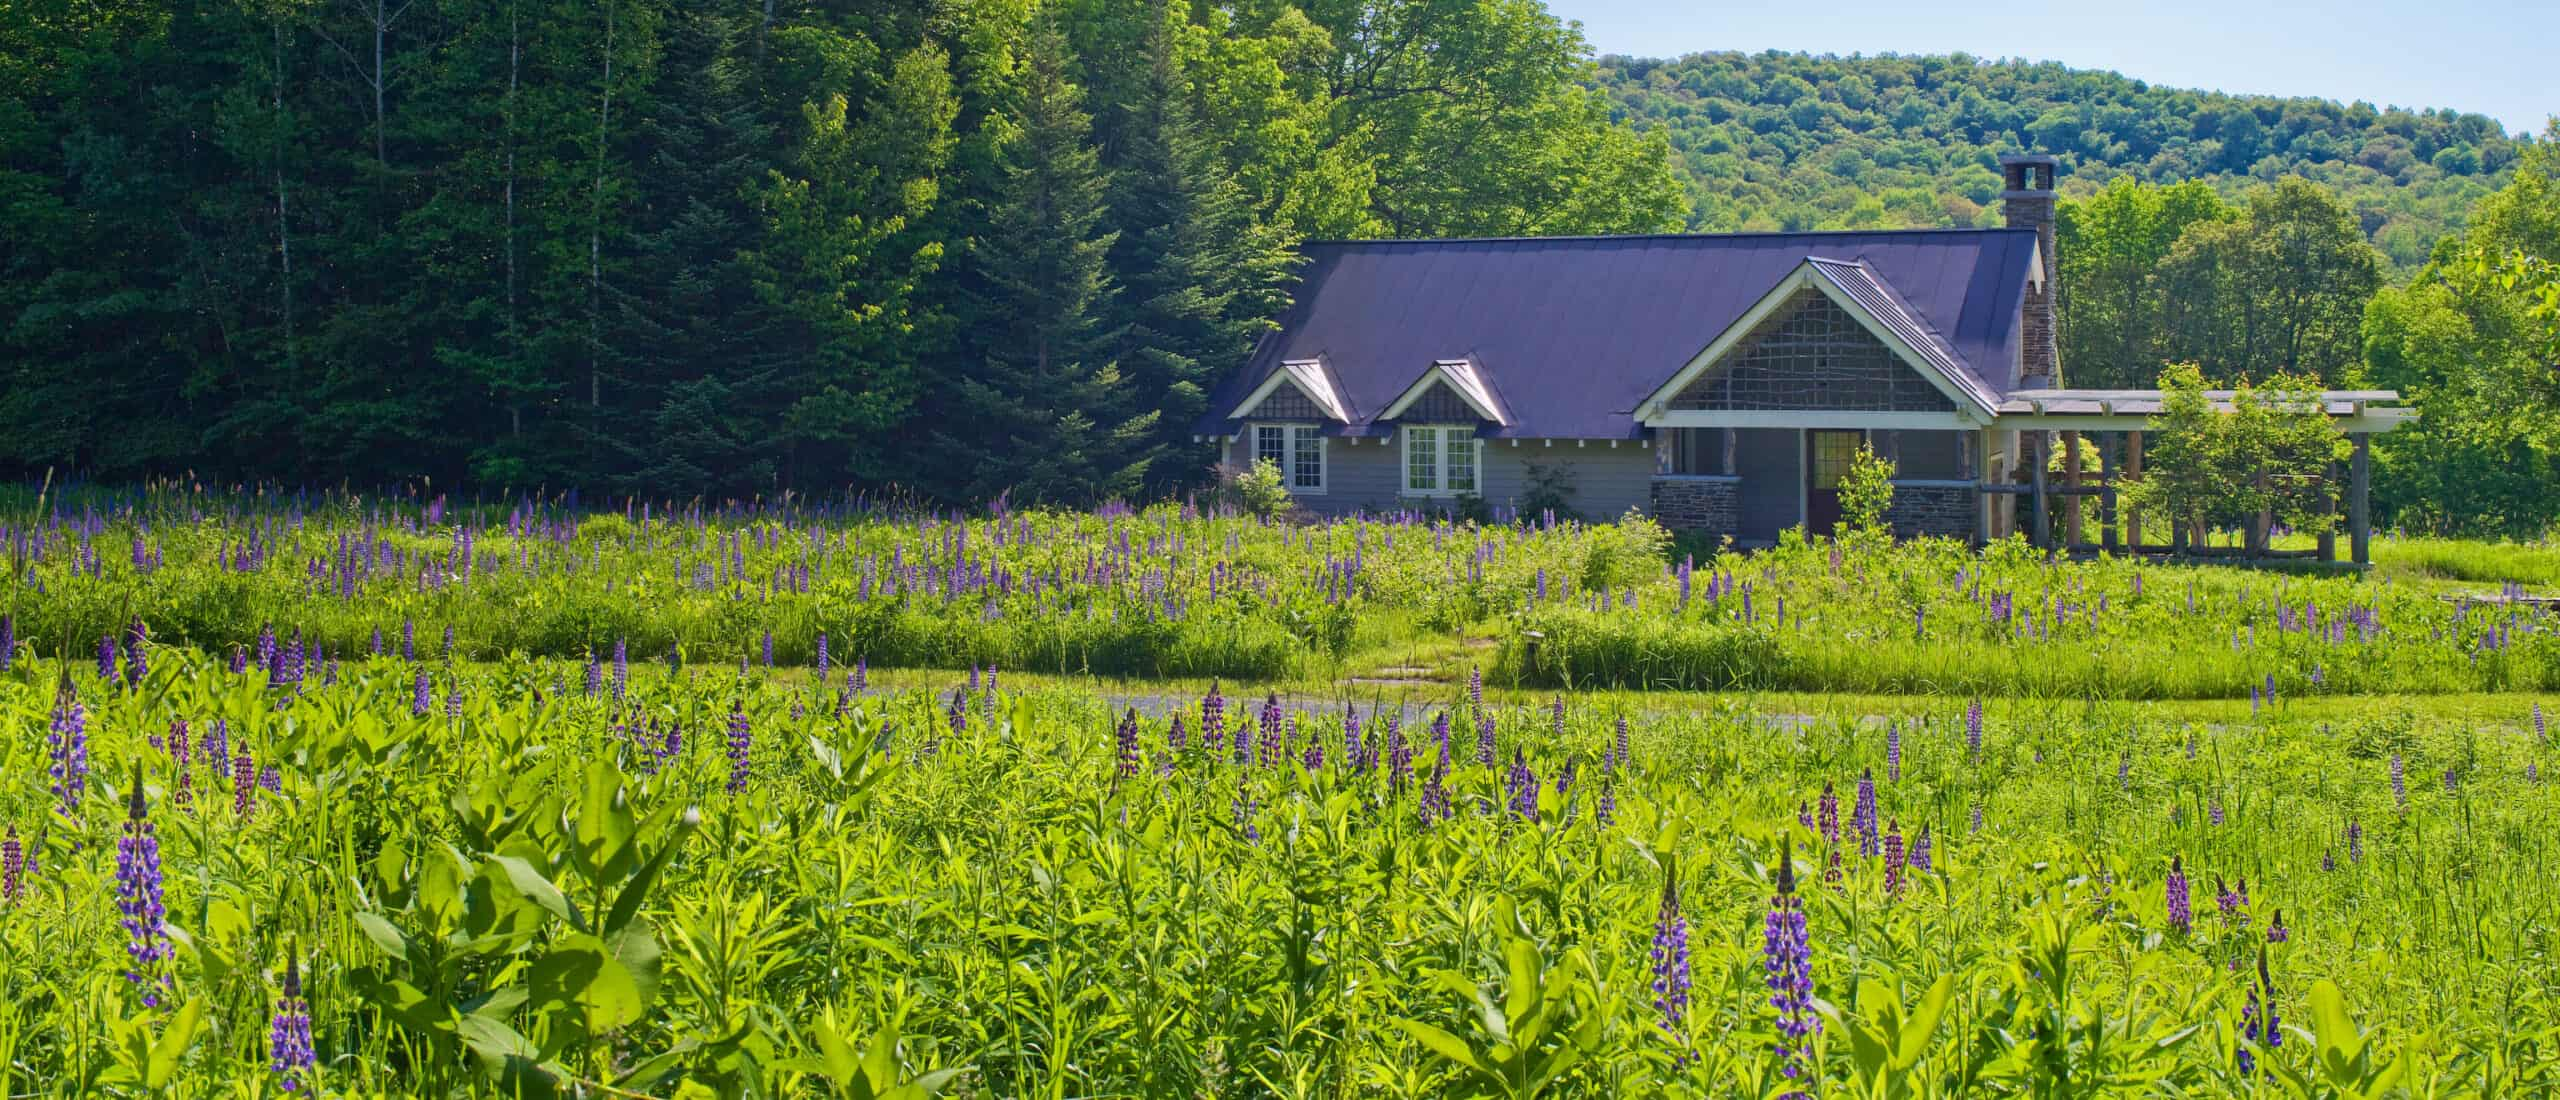 Tiny house situated on a beautiful lavender farm